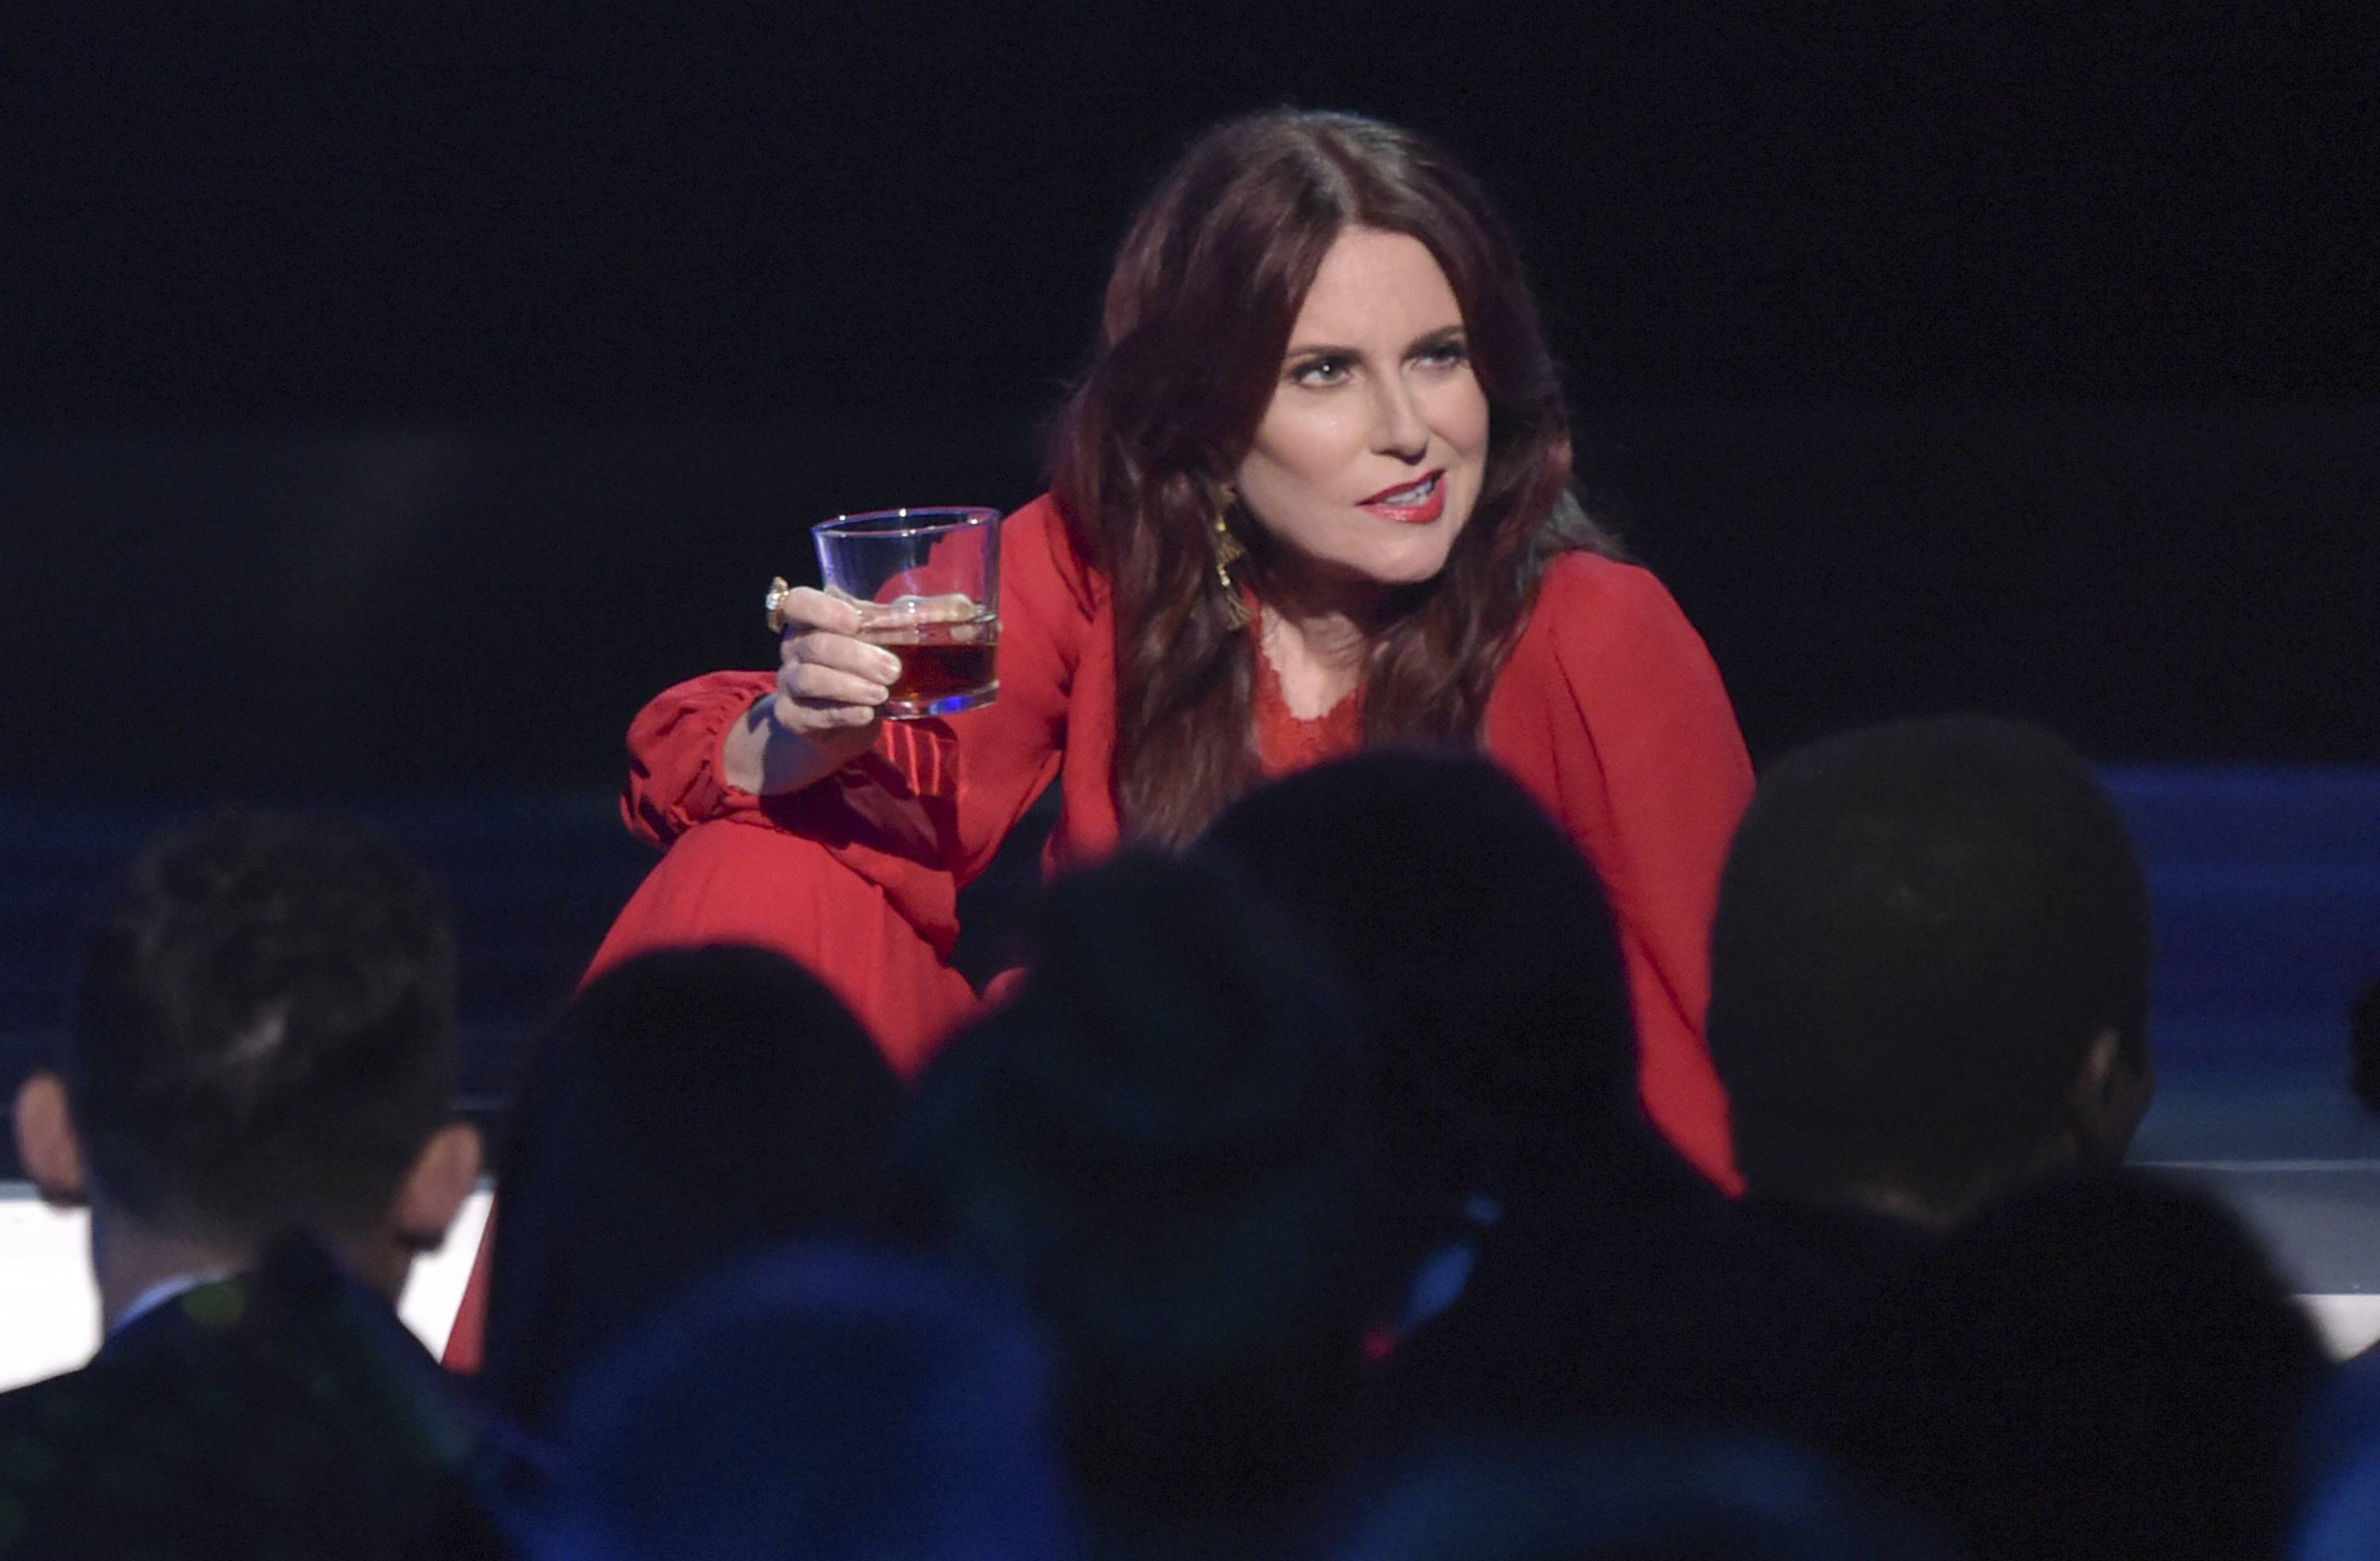 Host Megan Mullally performs a skit at the 25th annual Screen Actors Guild Awards at the Shrine Auditorium & Expo Hall on Sunday, Jan. 27, 2019, in Los Angeles. (Photo by Richard Shotwell/Invision/AP)